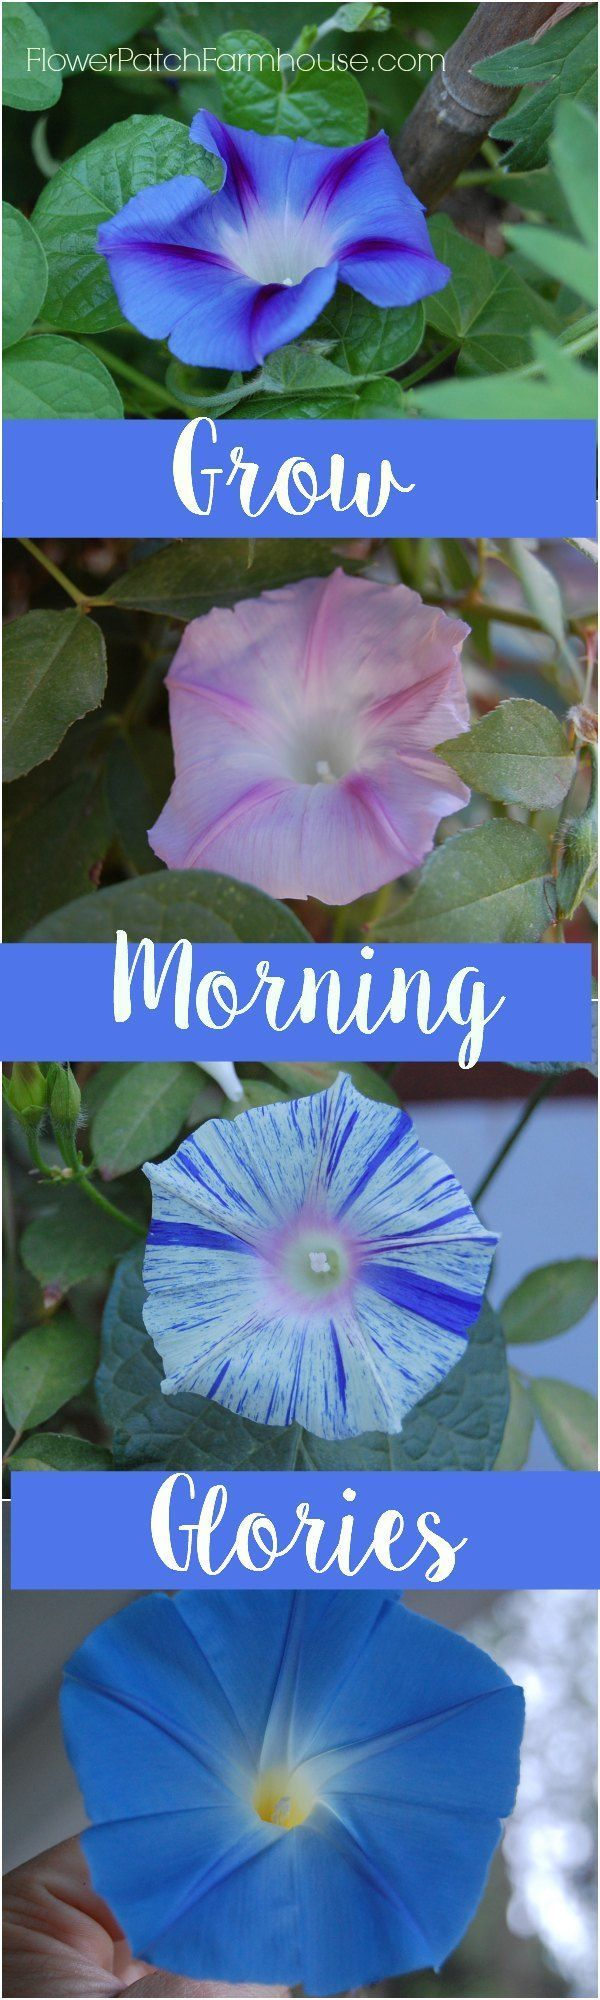 Grow Morning Glories in your garden - cover an ugly fence or bare wall, or create a privacy trellis. | Flower Patch Farmhouse